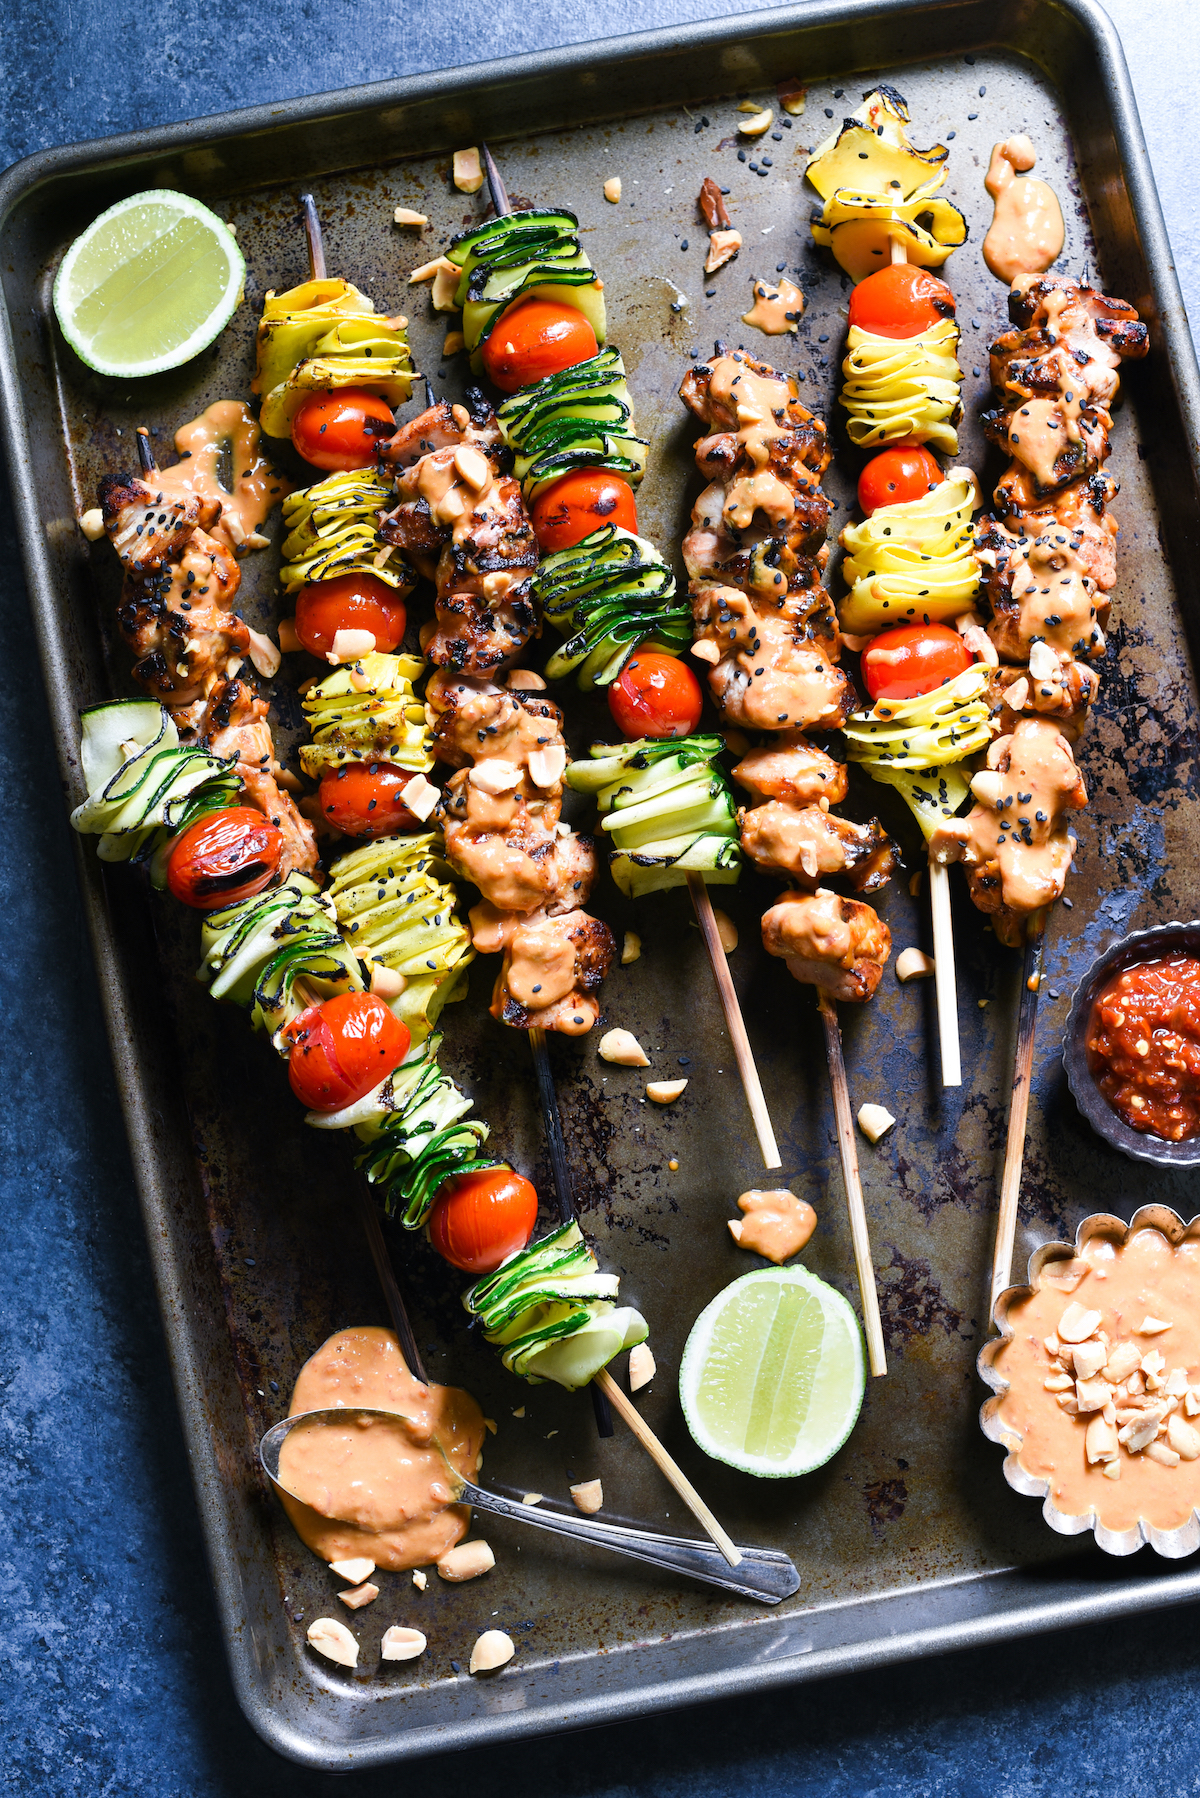 Spicy-Peanut-Chicken-Skewers